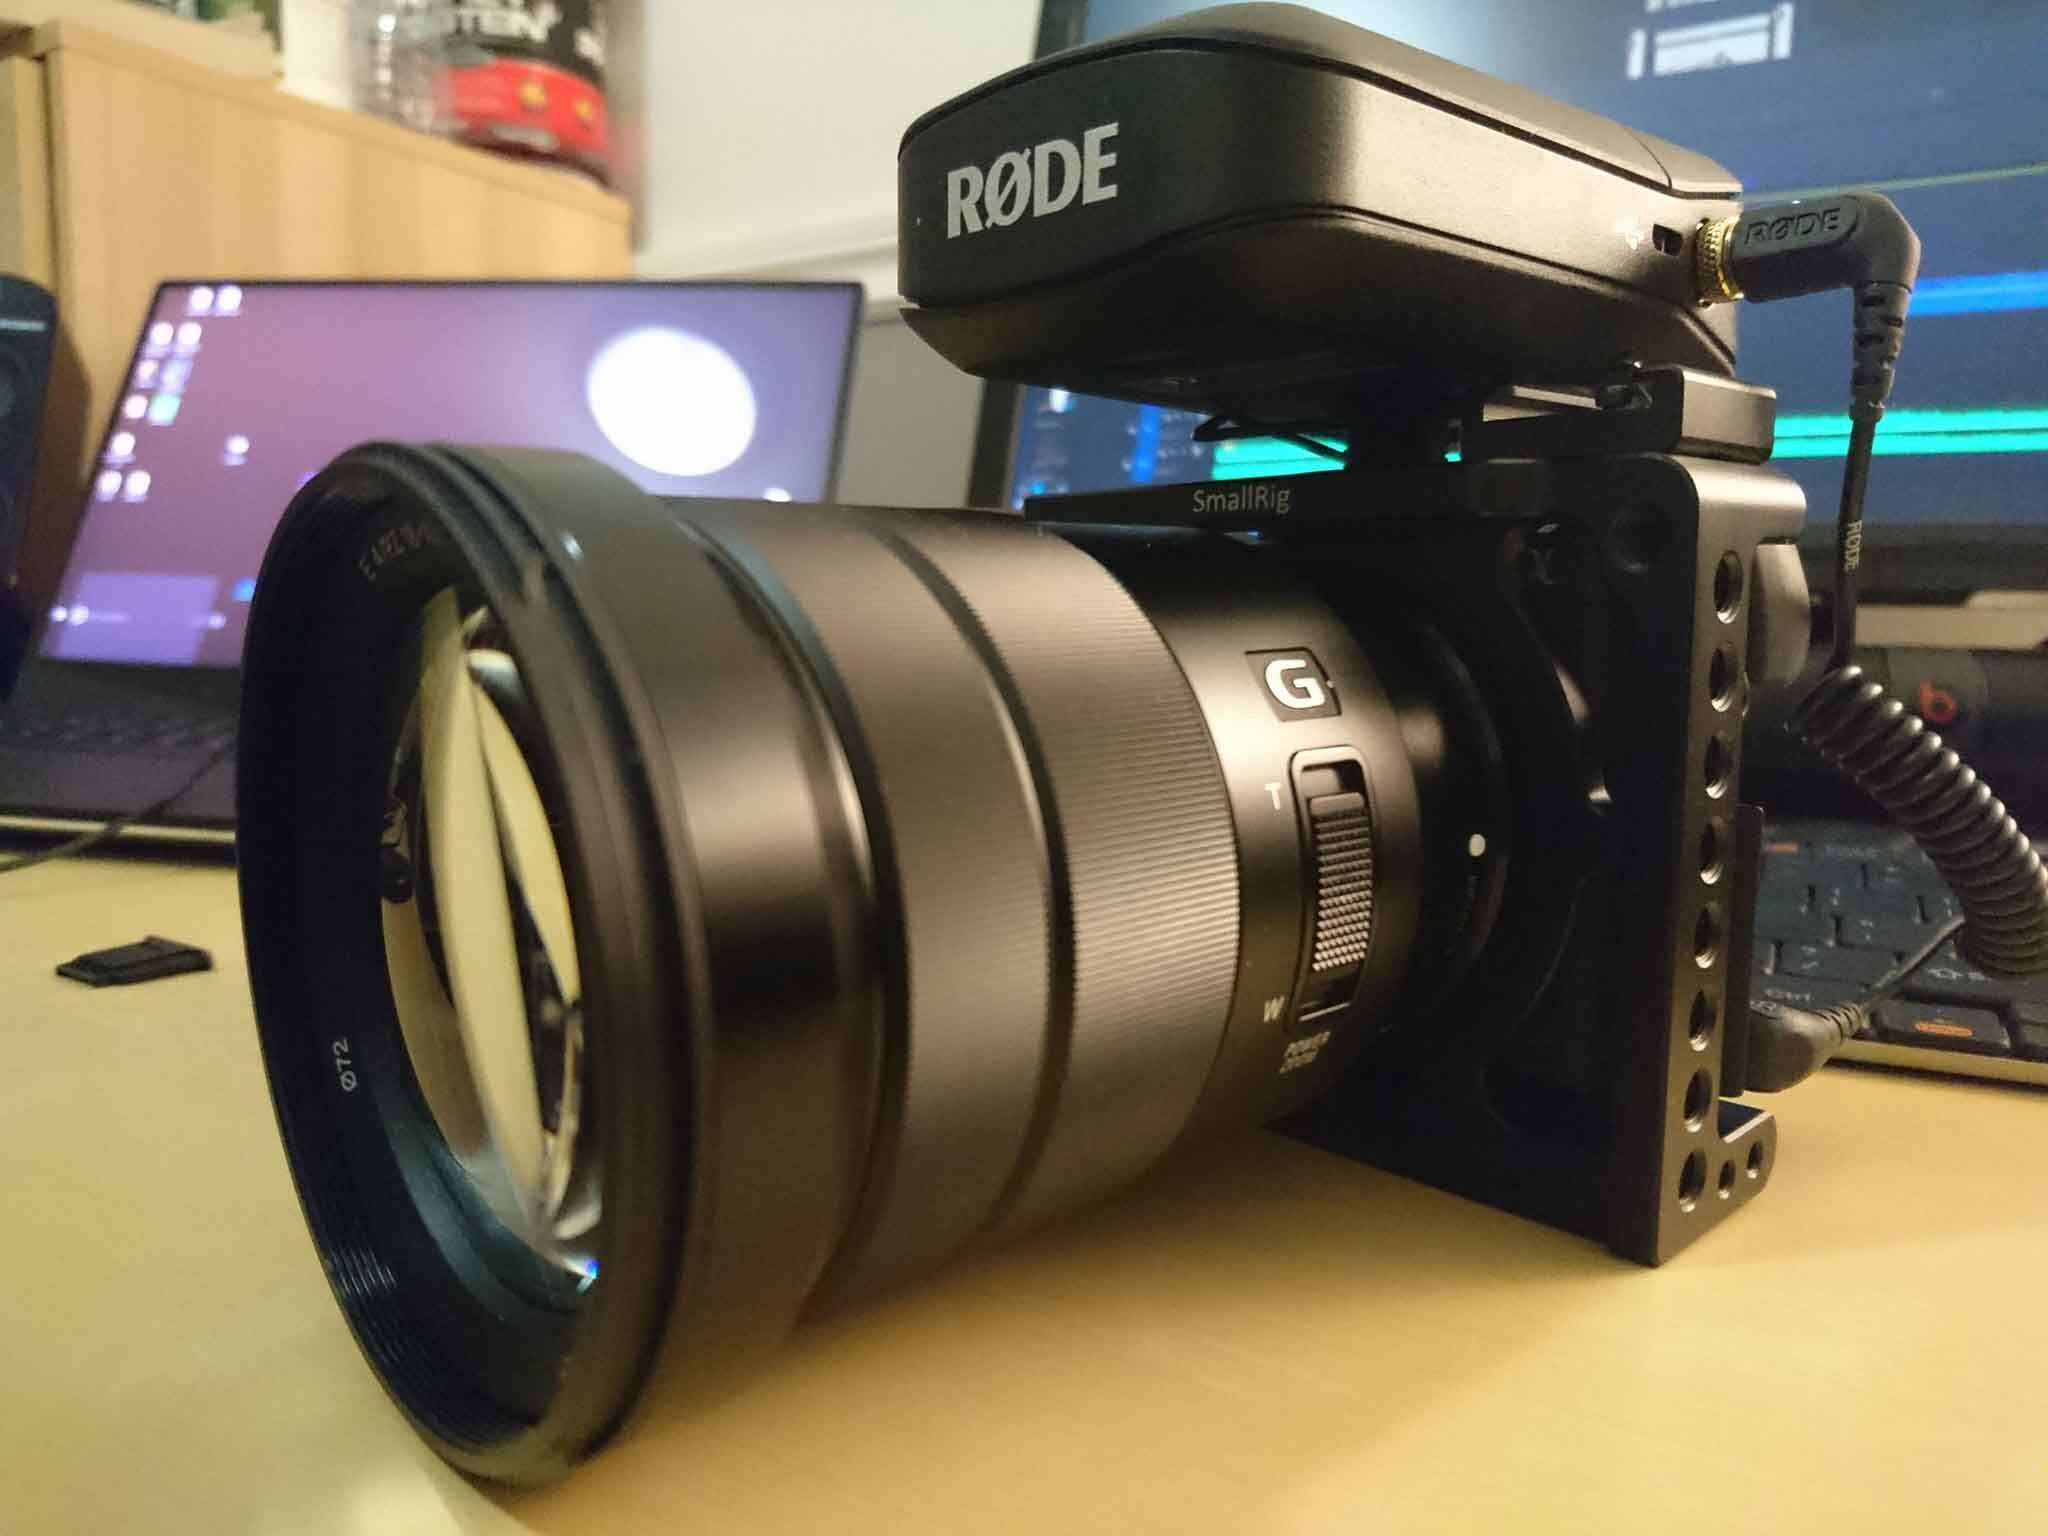 Sony A6000 A6300 A6500 Ilce 6000 Ilce 6300 Ilce A6500 Nex 7 Cage 1661 Cage Sony Sony A6300